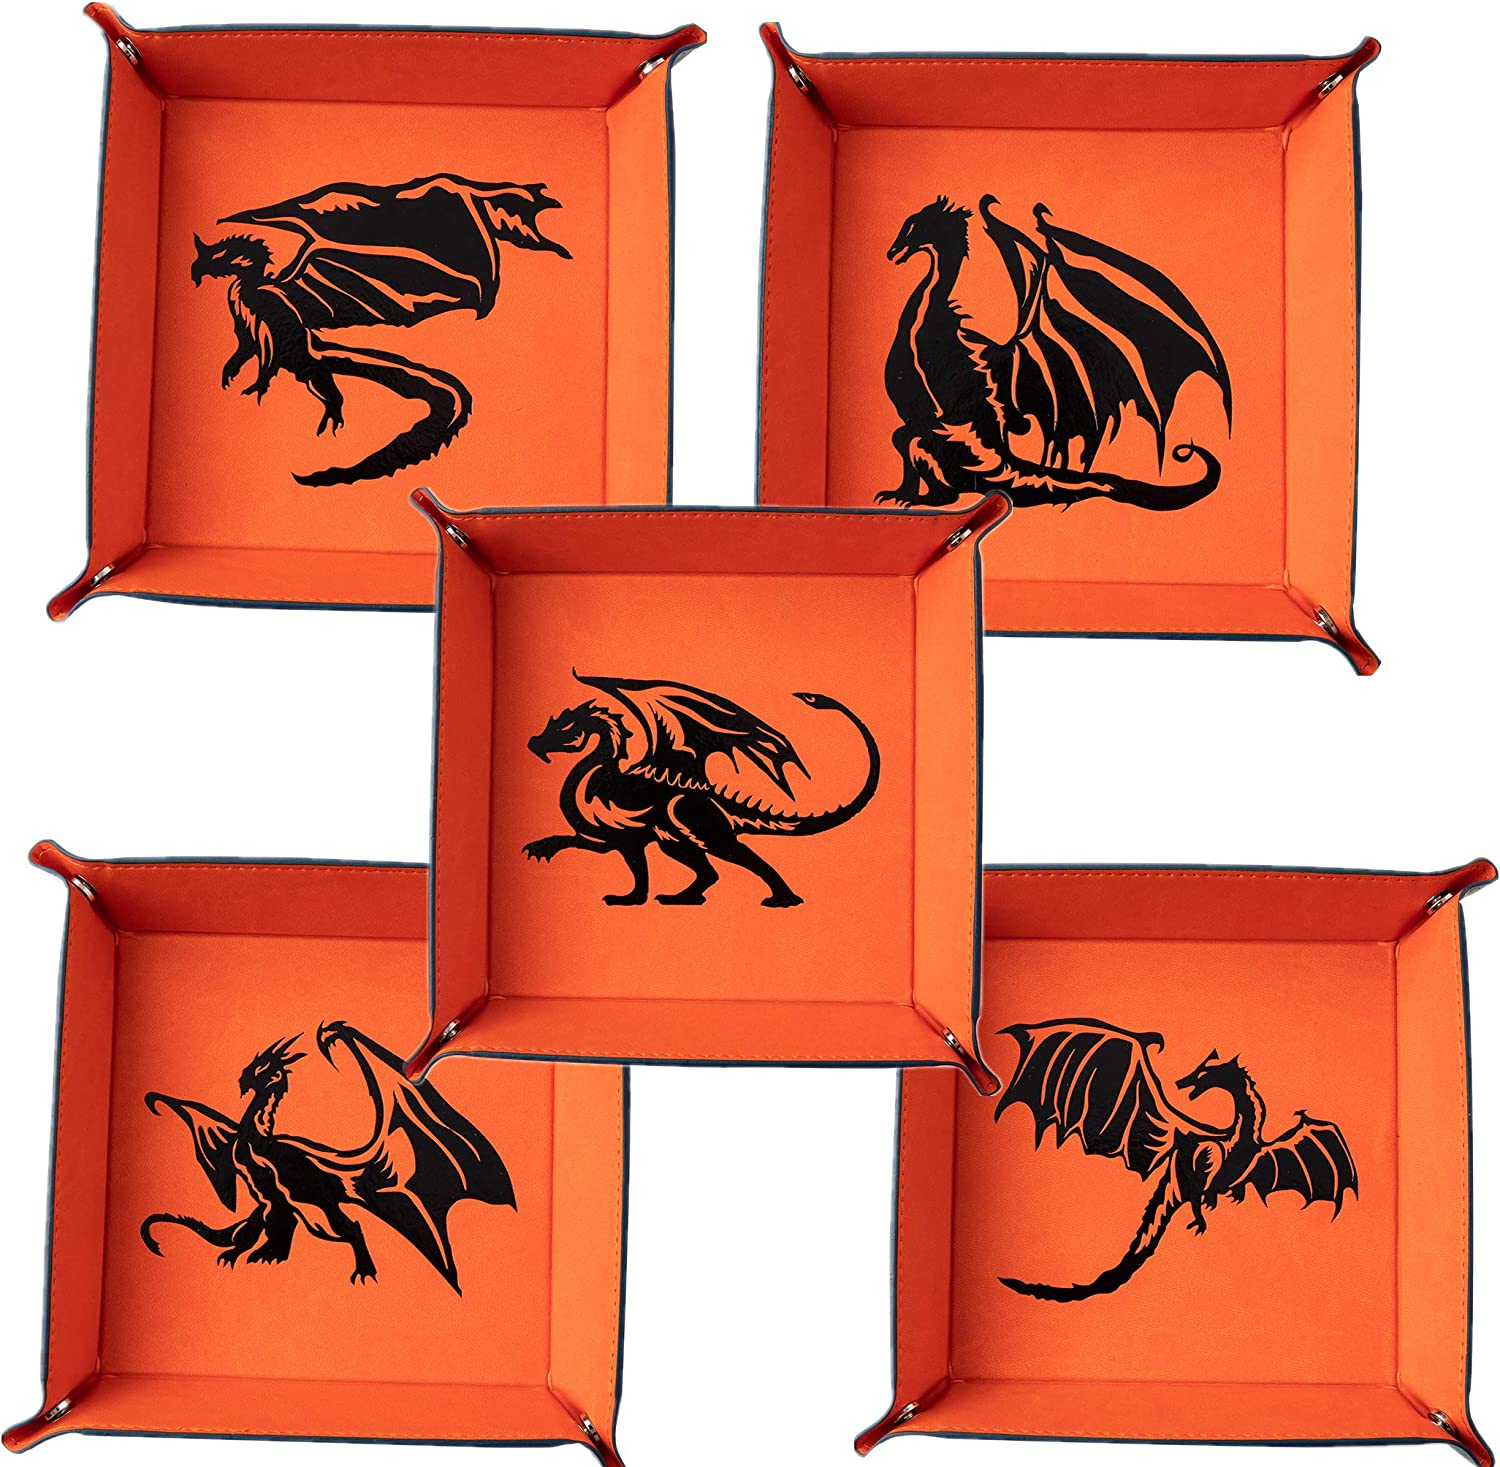 PUGED 5 Pack Dragon DND Dice Trays and Dice Bag Set Leather Folding Square Holder Portable Dice Storage Box for Rolling Dice Games RPG, D&D and Other Table Games